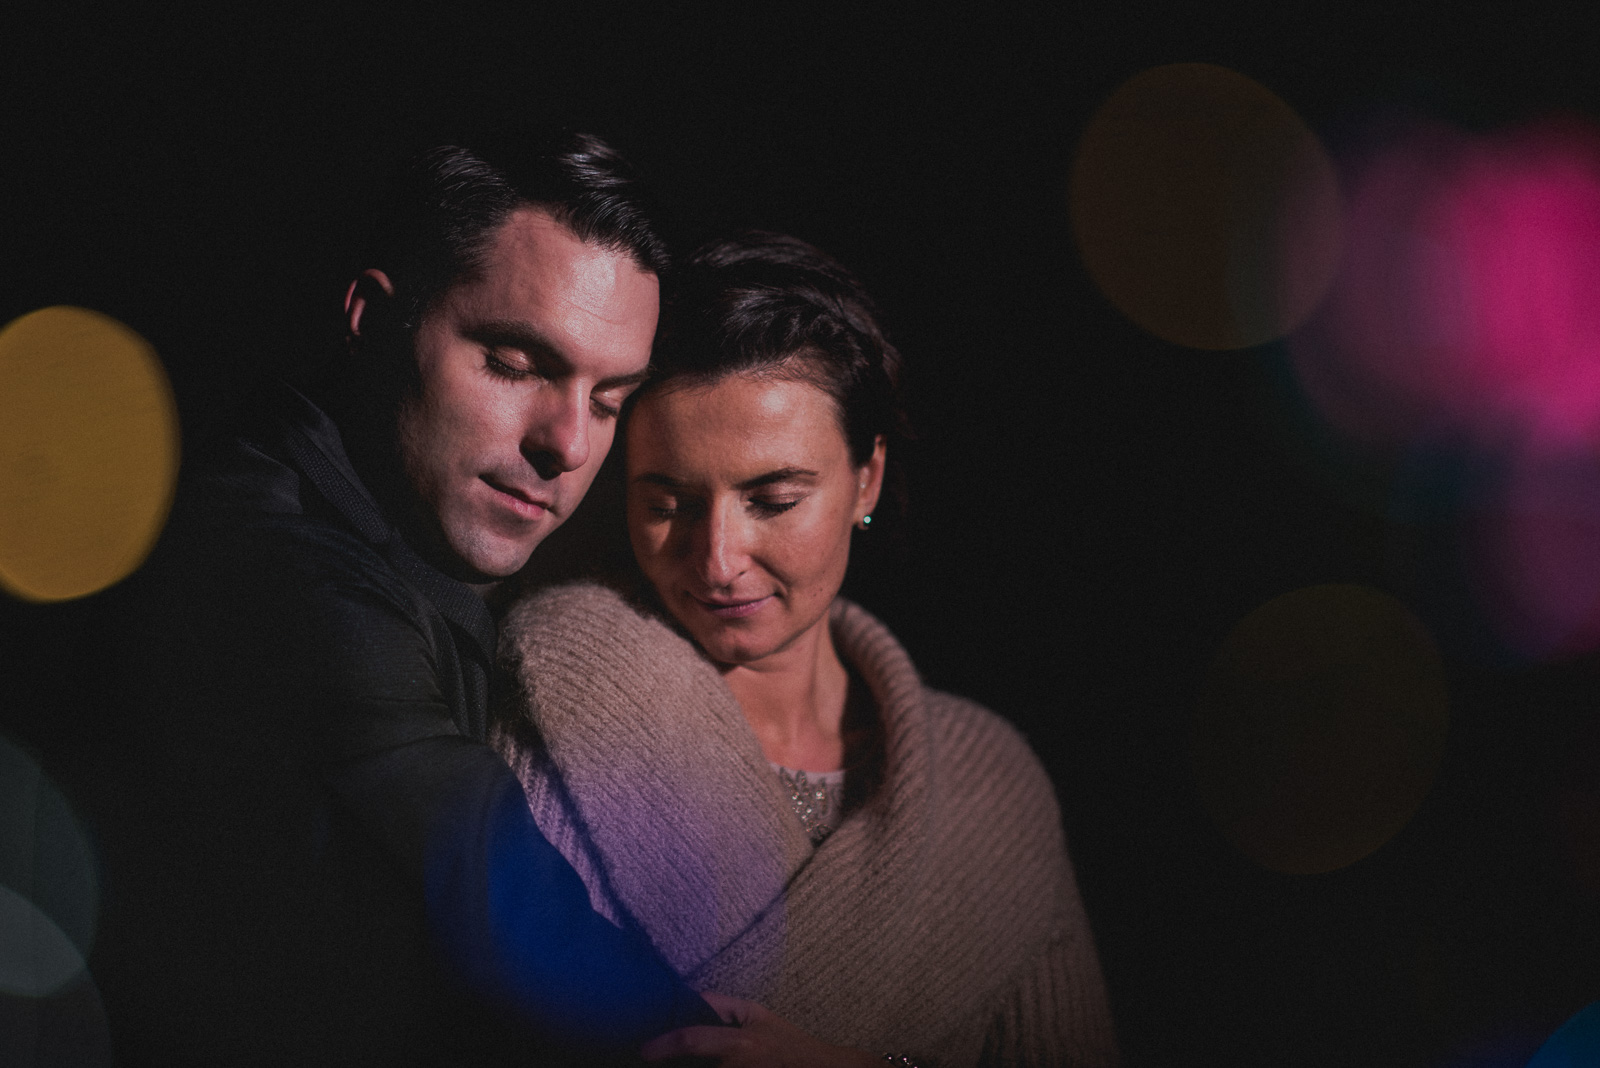 creative lighting portrait of bride and groom outdoors at the Pear Tree Restaurant in Burnaby BC - Vancouver Island Wedding Photographer